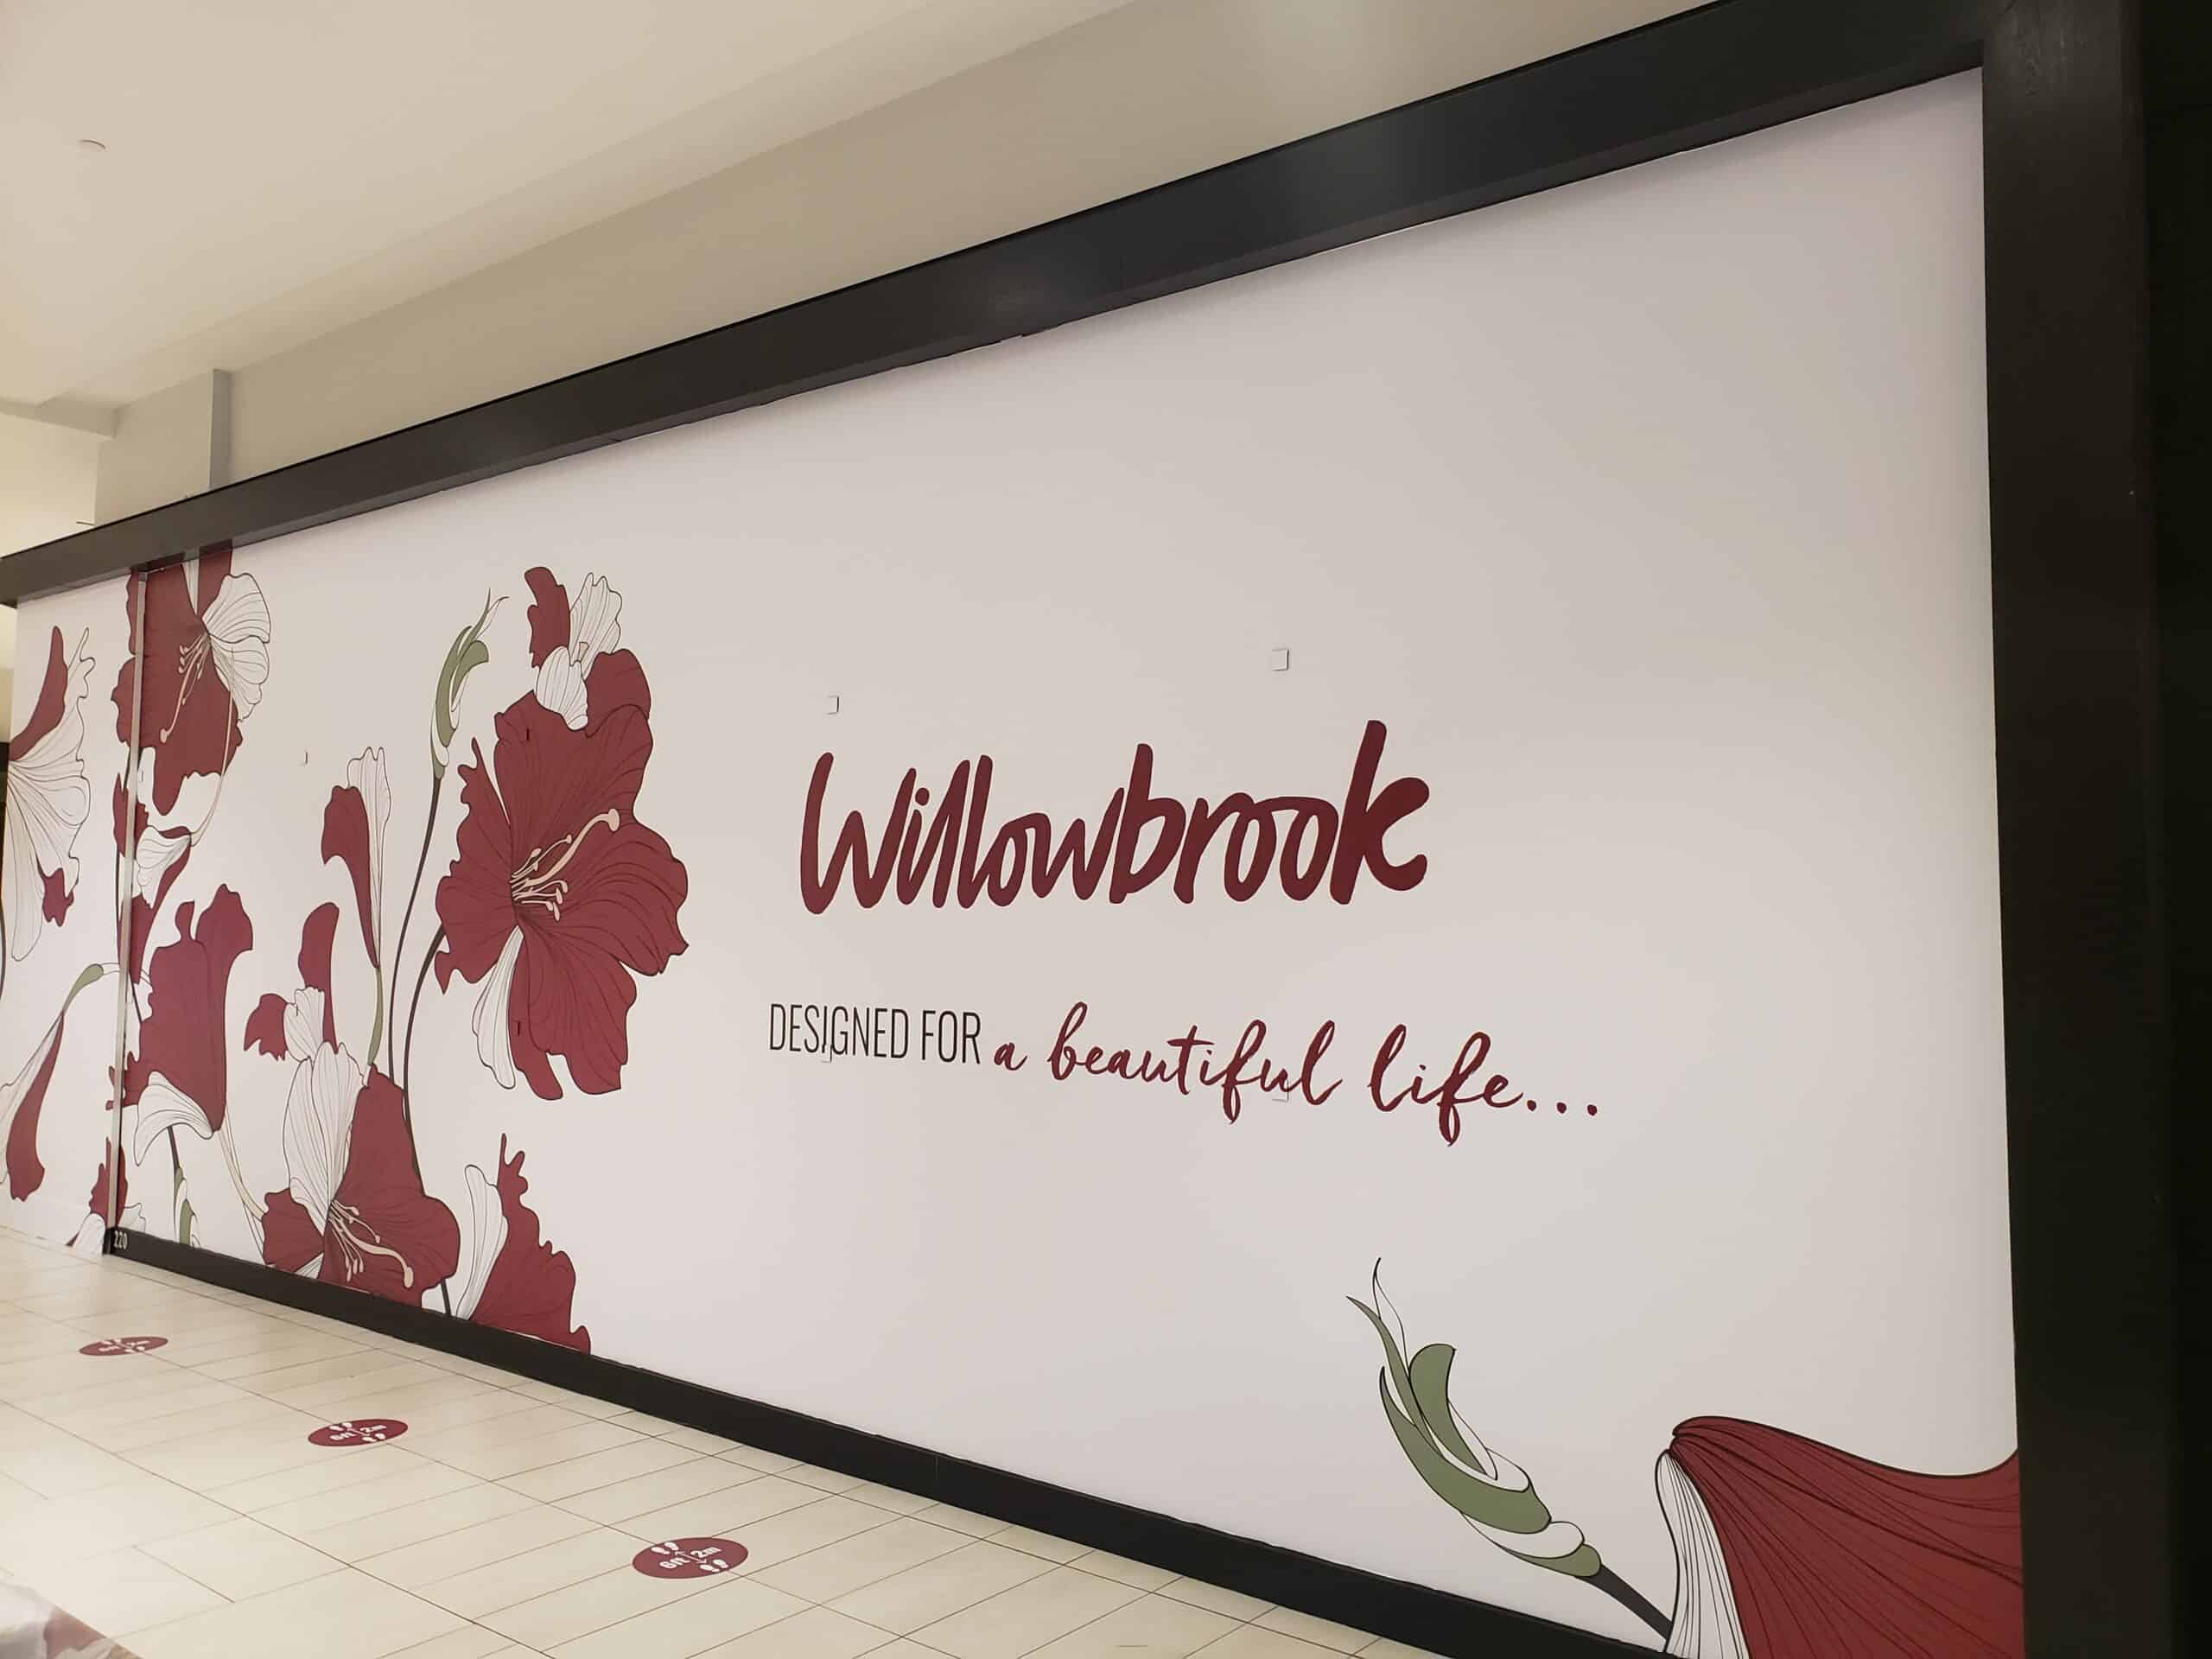 Willowbrook Mall vinyl graphics wall mural